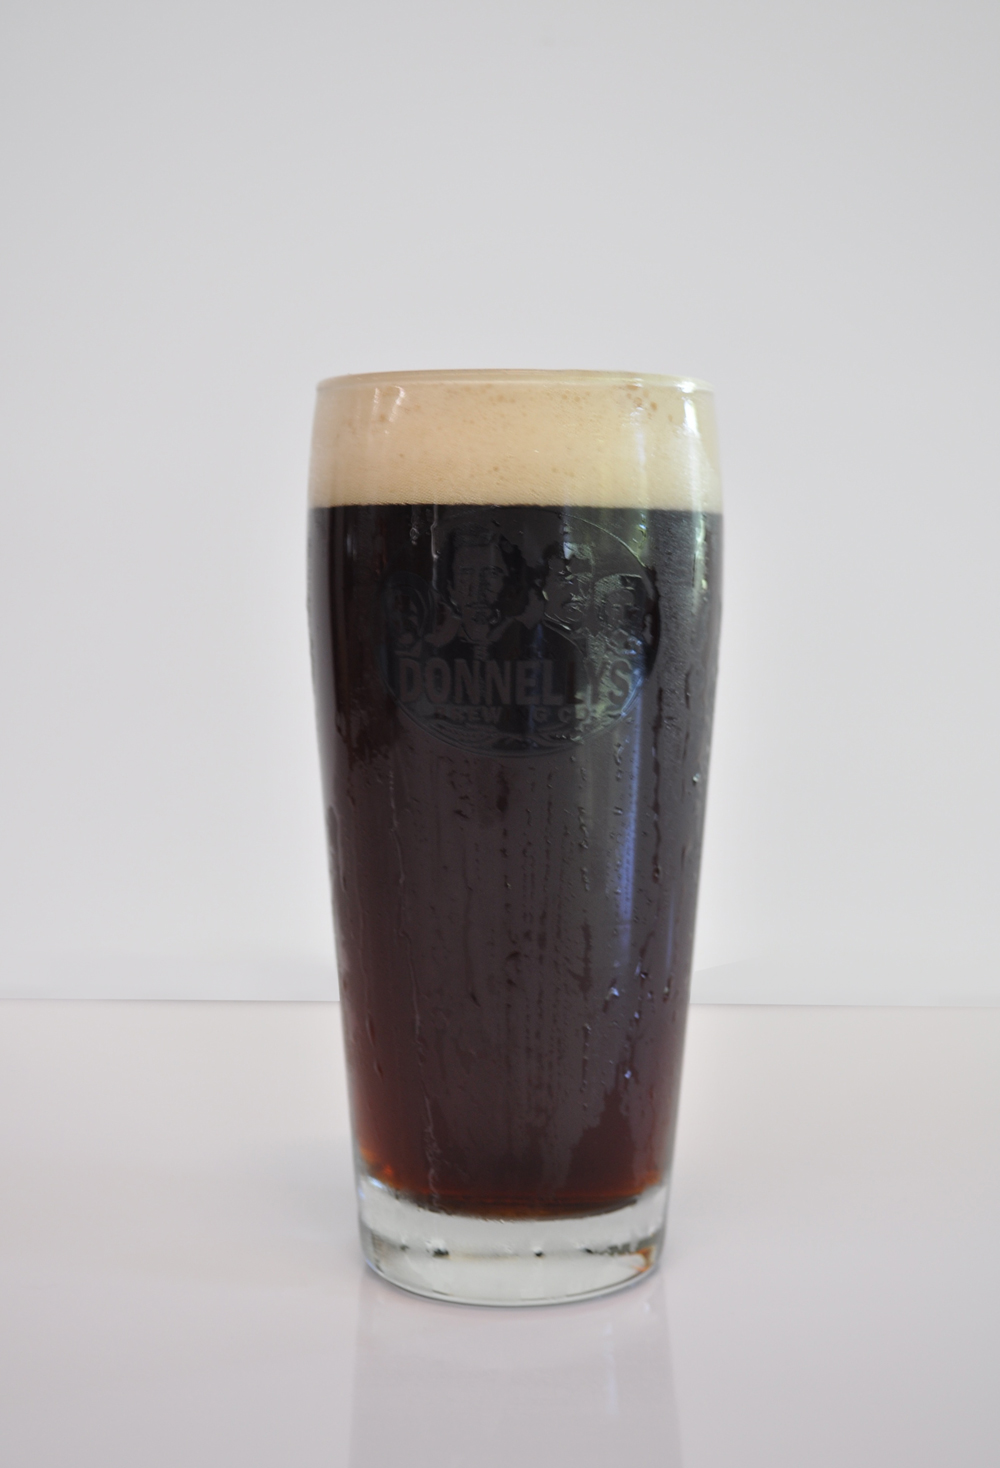 A refreshing pint of Black Donnellys Brewing Company Roman Line Lager beer.